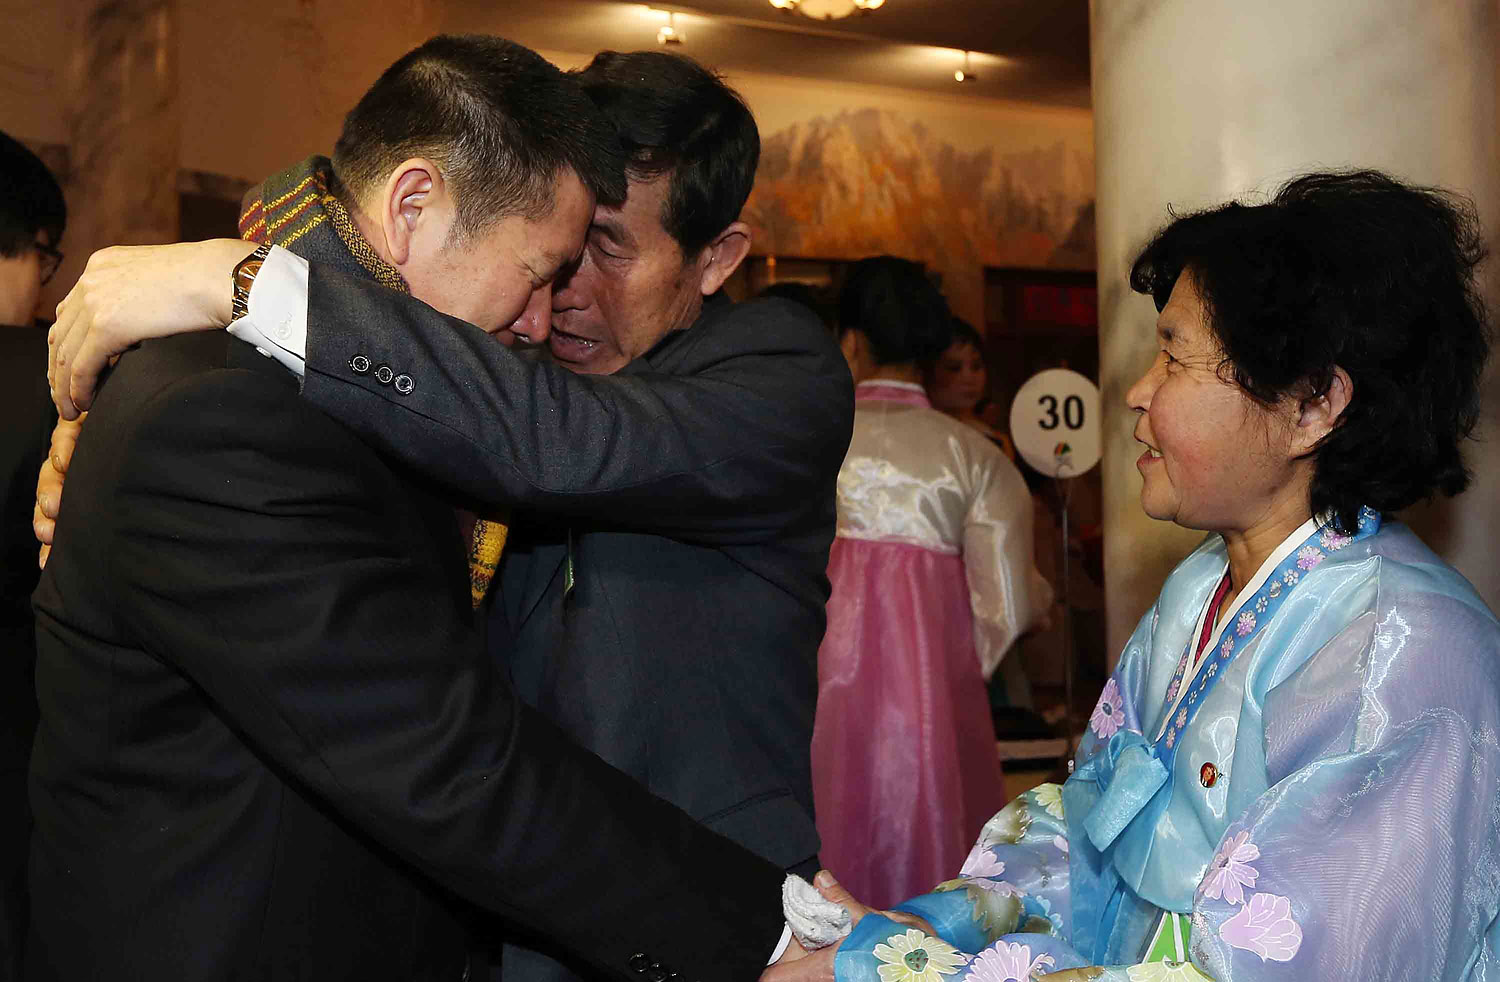 Park Yang-Kon of South Korea bids farewell to his brother Park Yang-Soo of North Korea as he prepares to depart the North Korean resort area of Mount Kumgang on the third and final day of the first group's family reunion on Feb. 22, 2014.